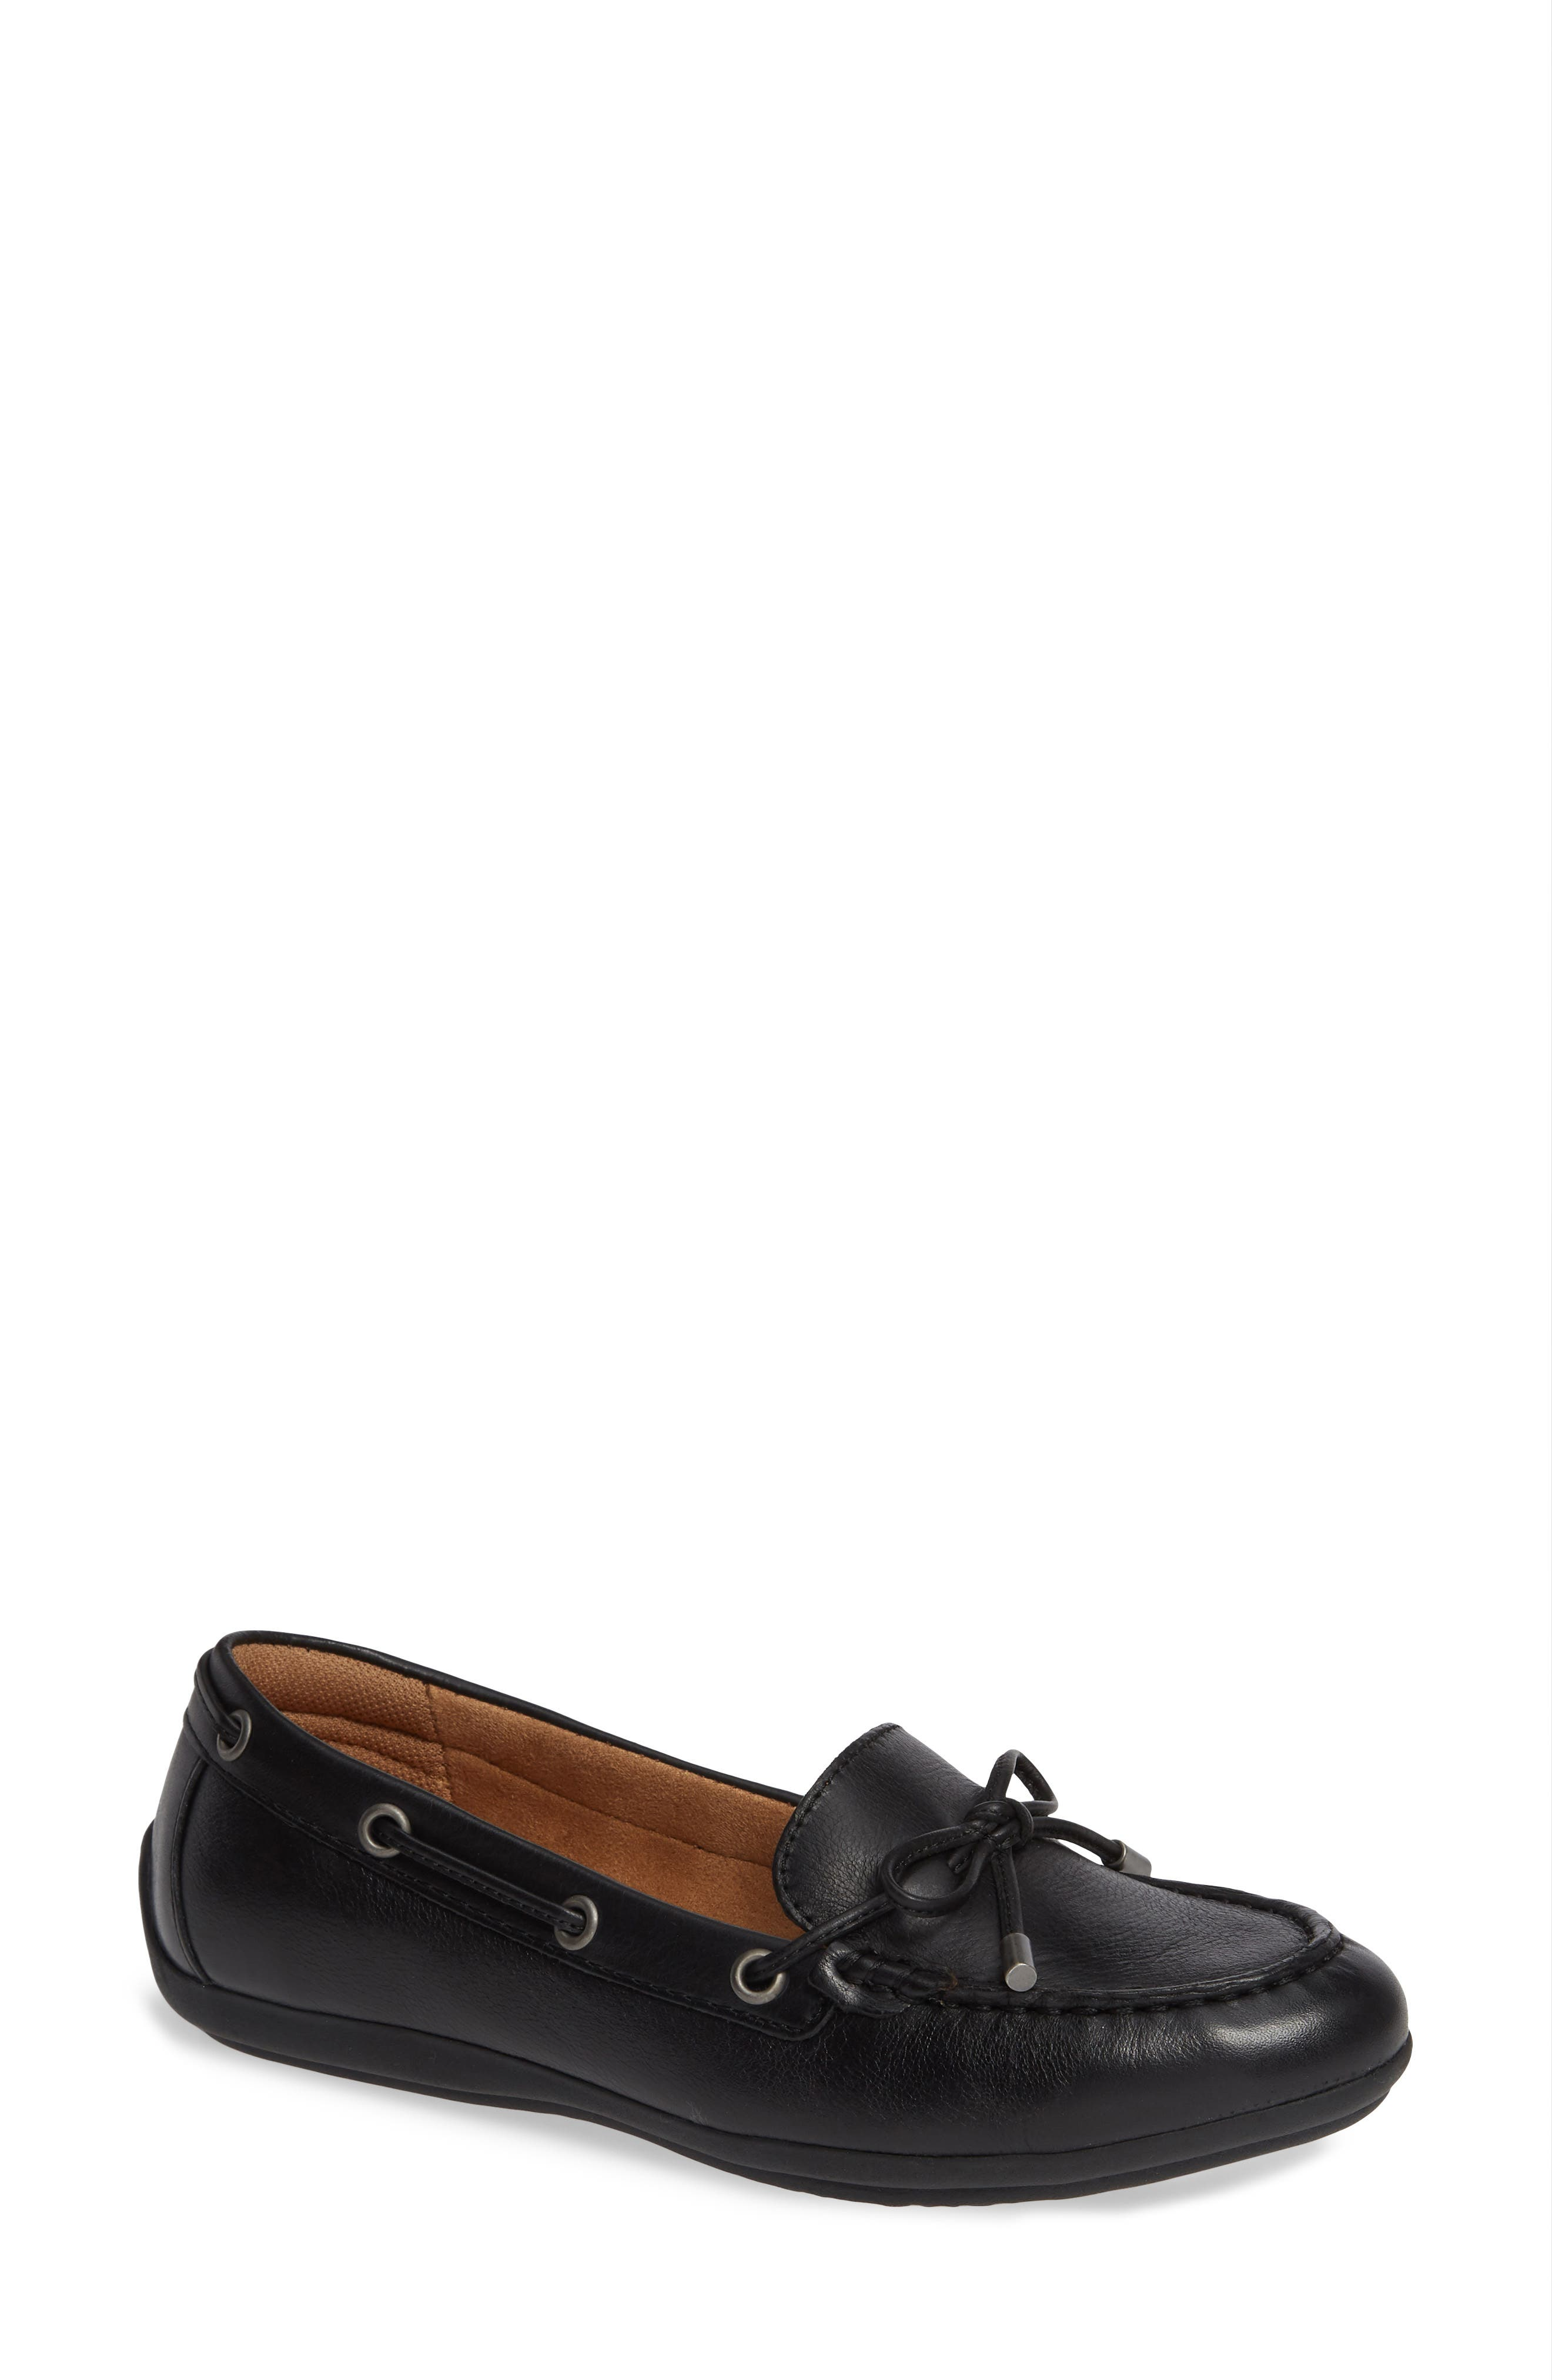 COMFORTIVA, Mindy Loafer, Main thumbnail 1, color, BLACK